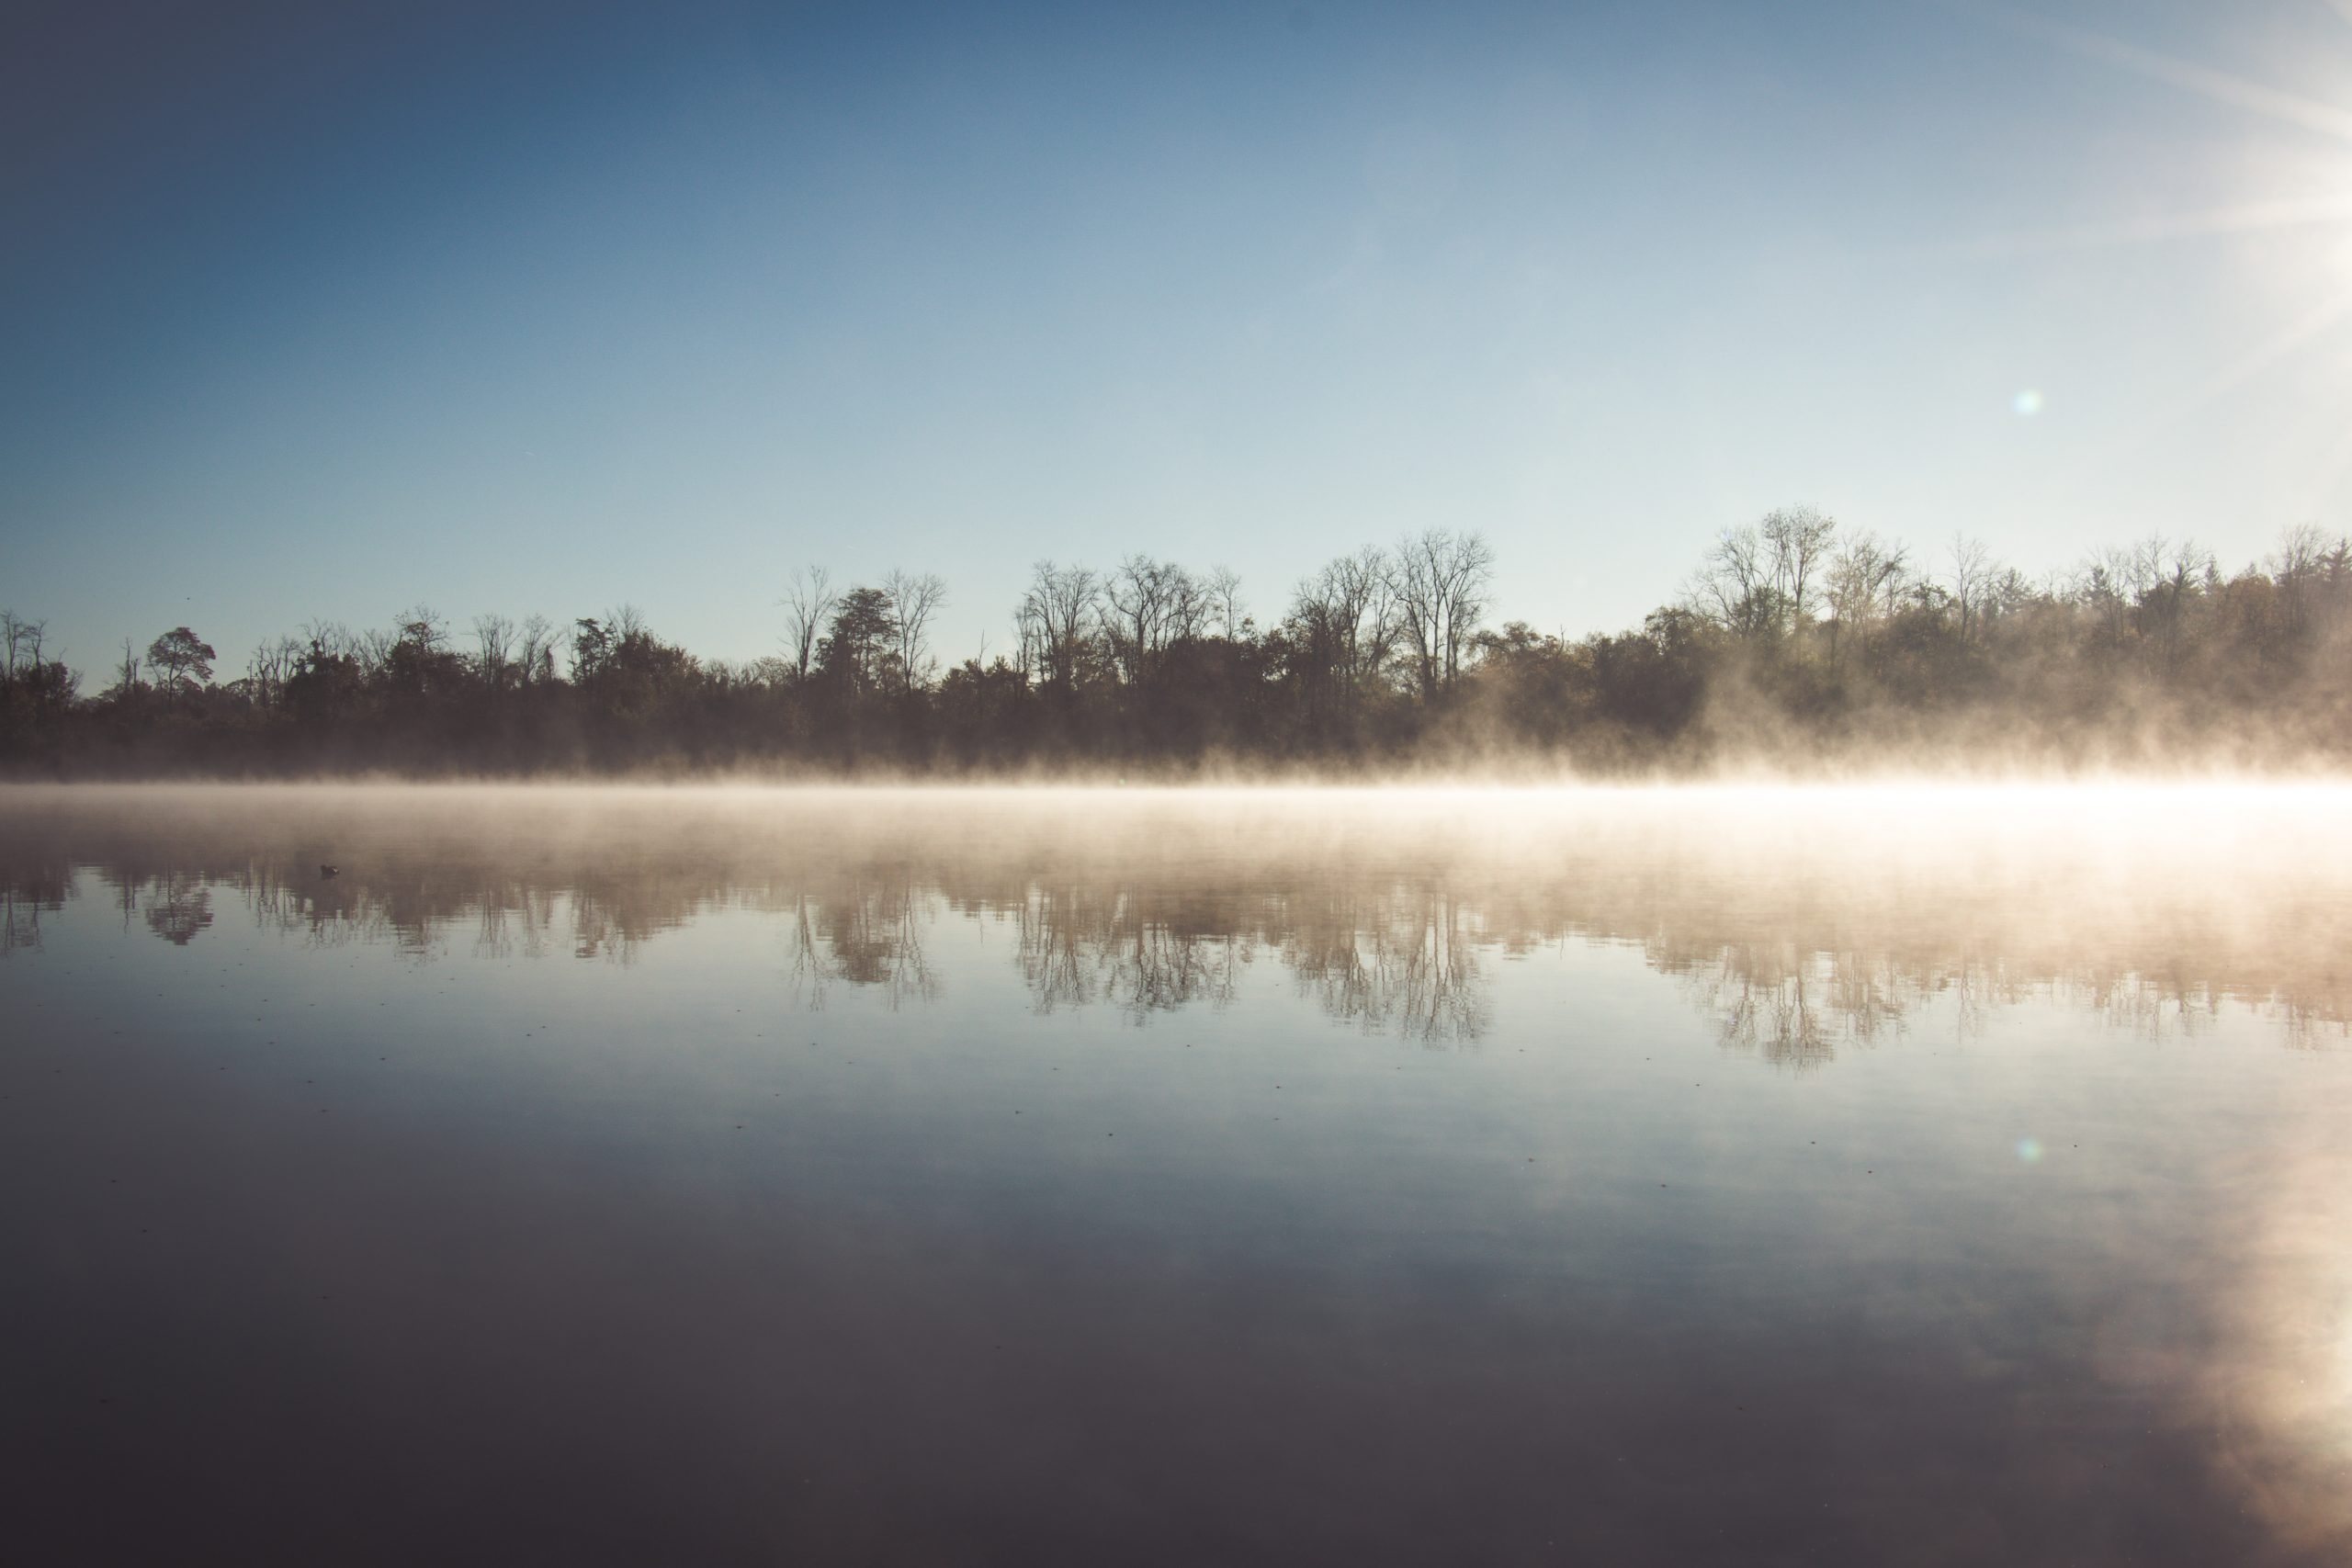 The sun shines over Winton Lake. You can see the reflection in the water of the trees lining the lake. There is fog permeating from the surface of the water.